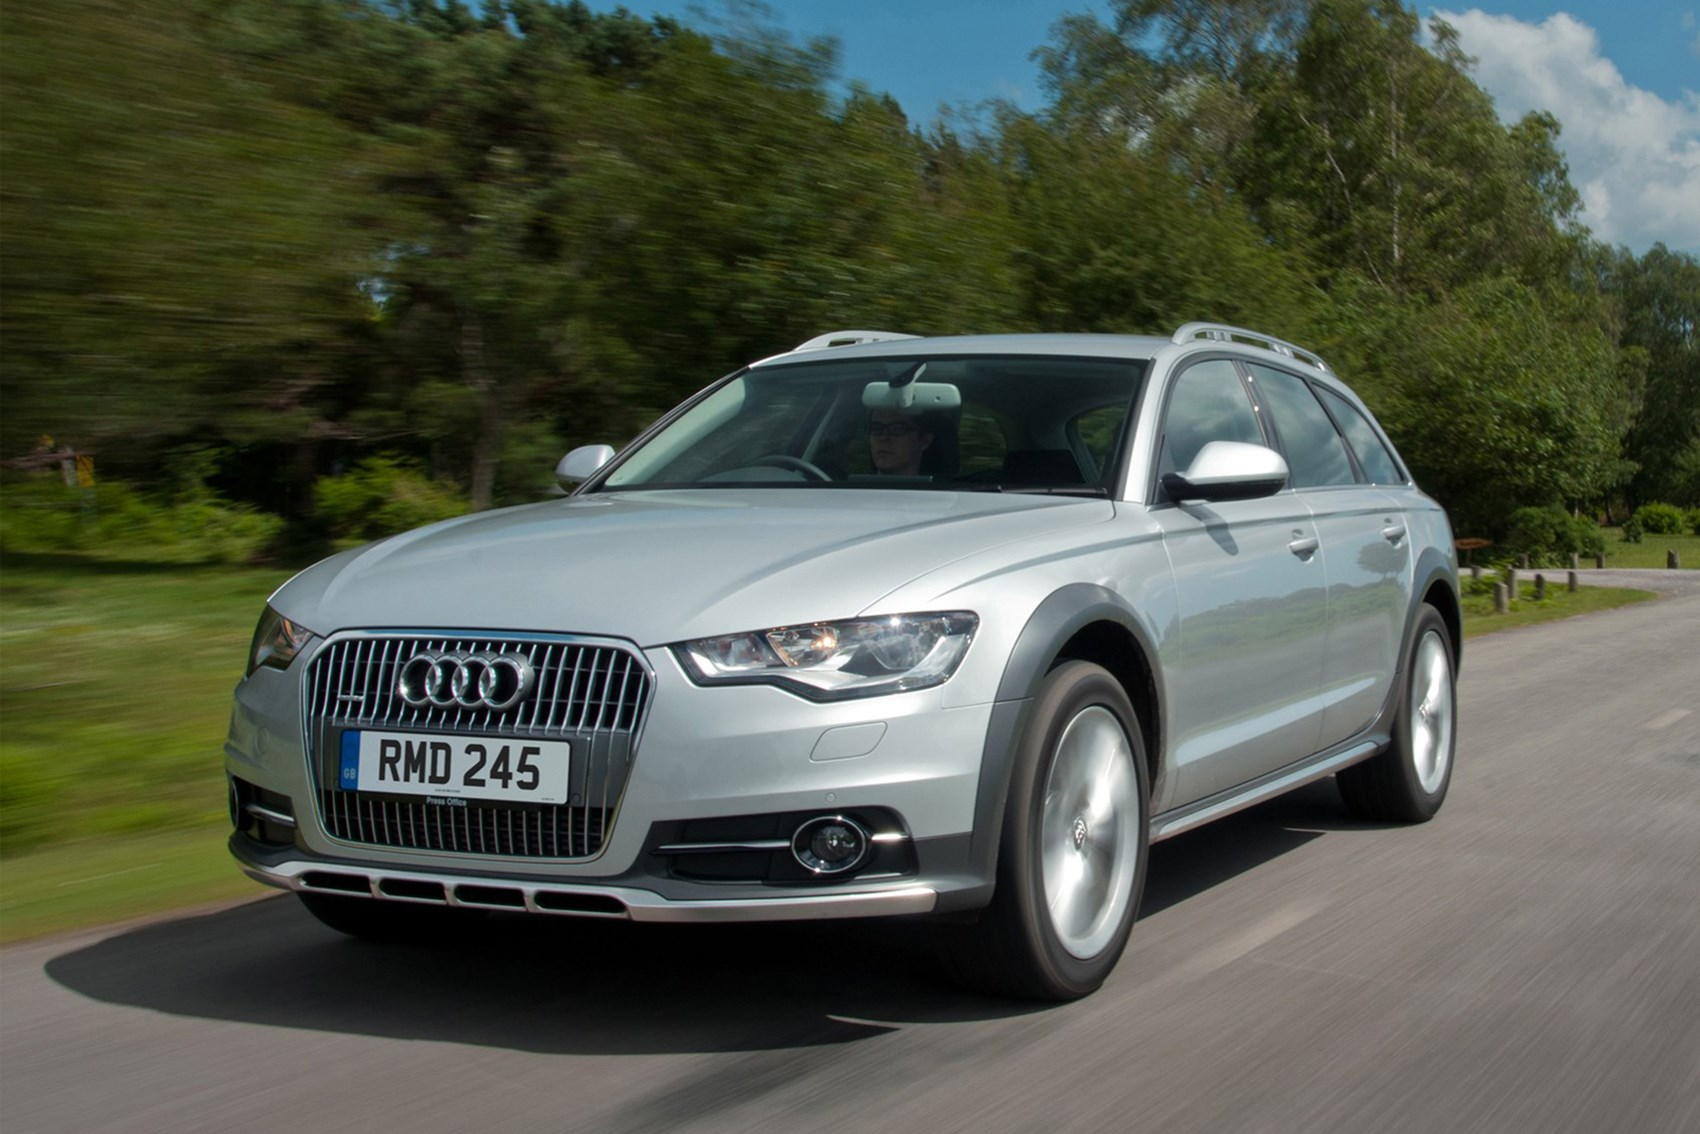 Audi A6 Allroad - best towing cars reviews